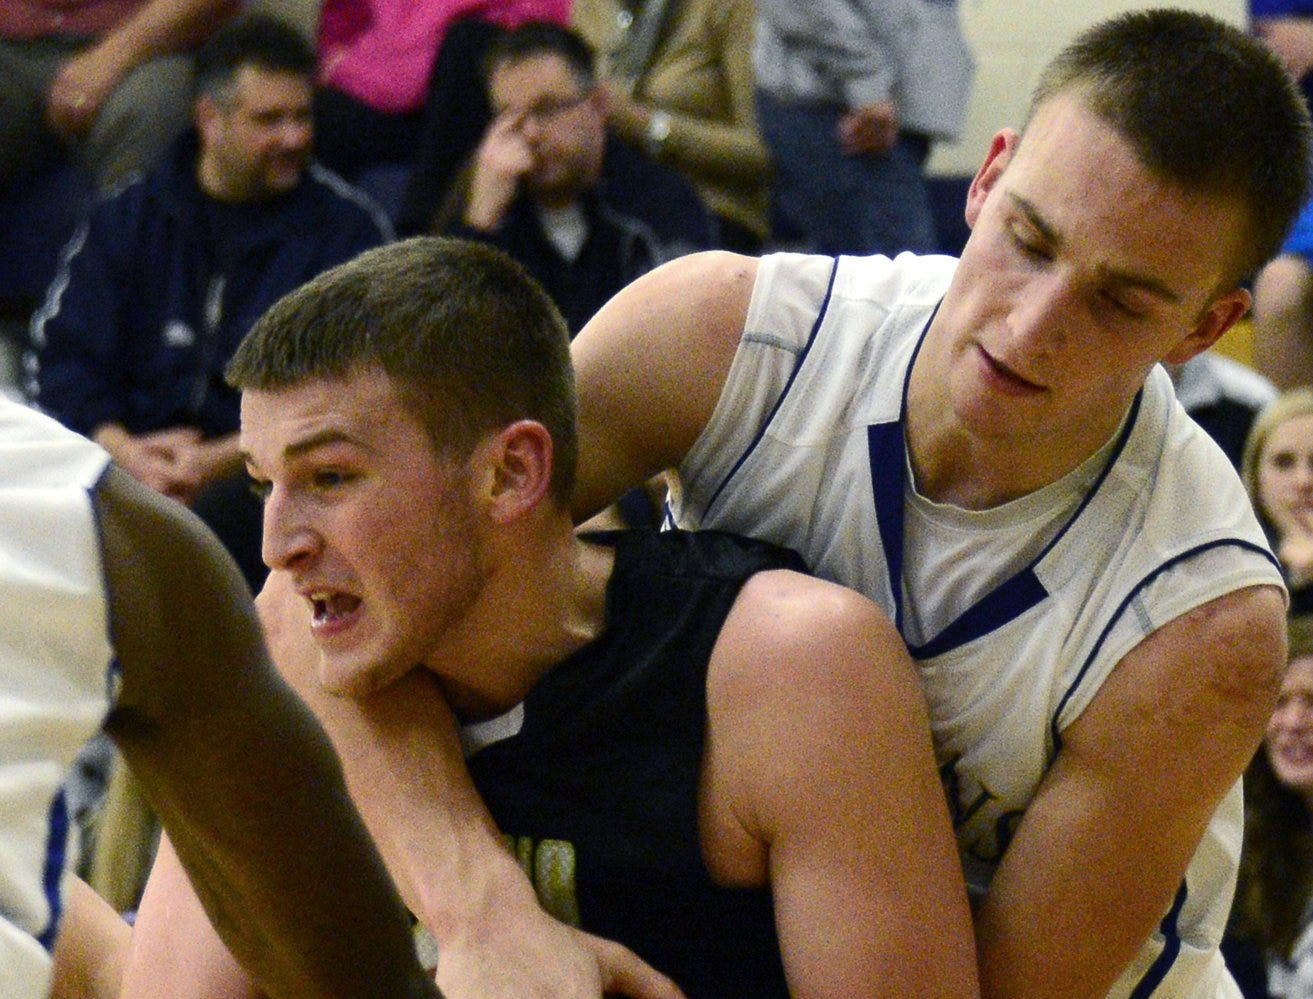 2012: Kyle Gallagher of Maine-Endwell tries to grab the ball from Corning's Jared Cramer in Tuesday's 73-43 Spartans victory at Maine-Endwell High School.